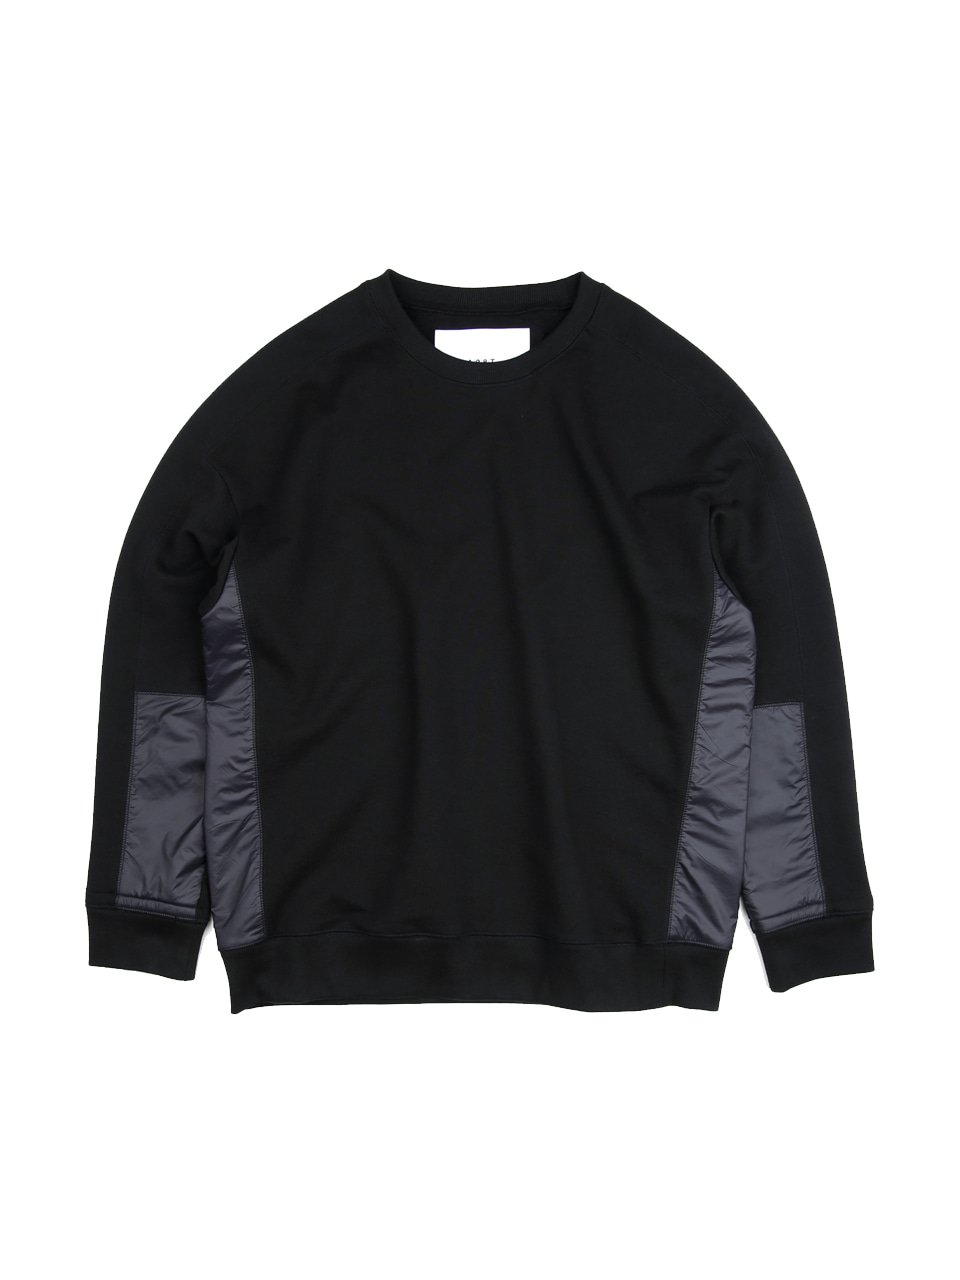 0202 Balance sweat Shirts